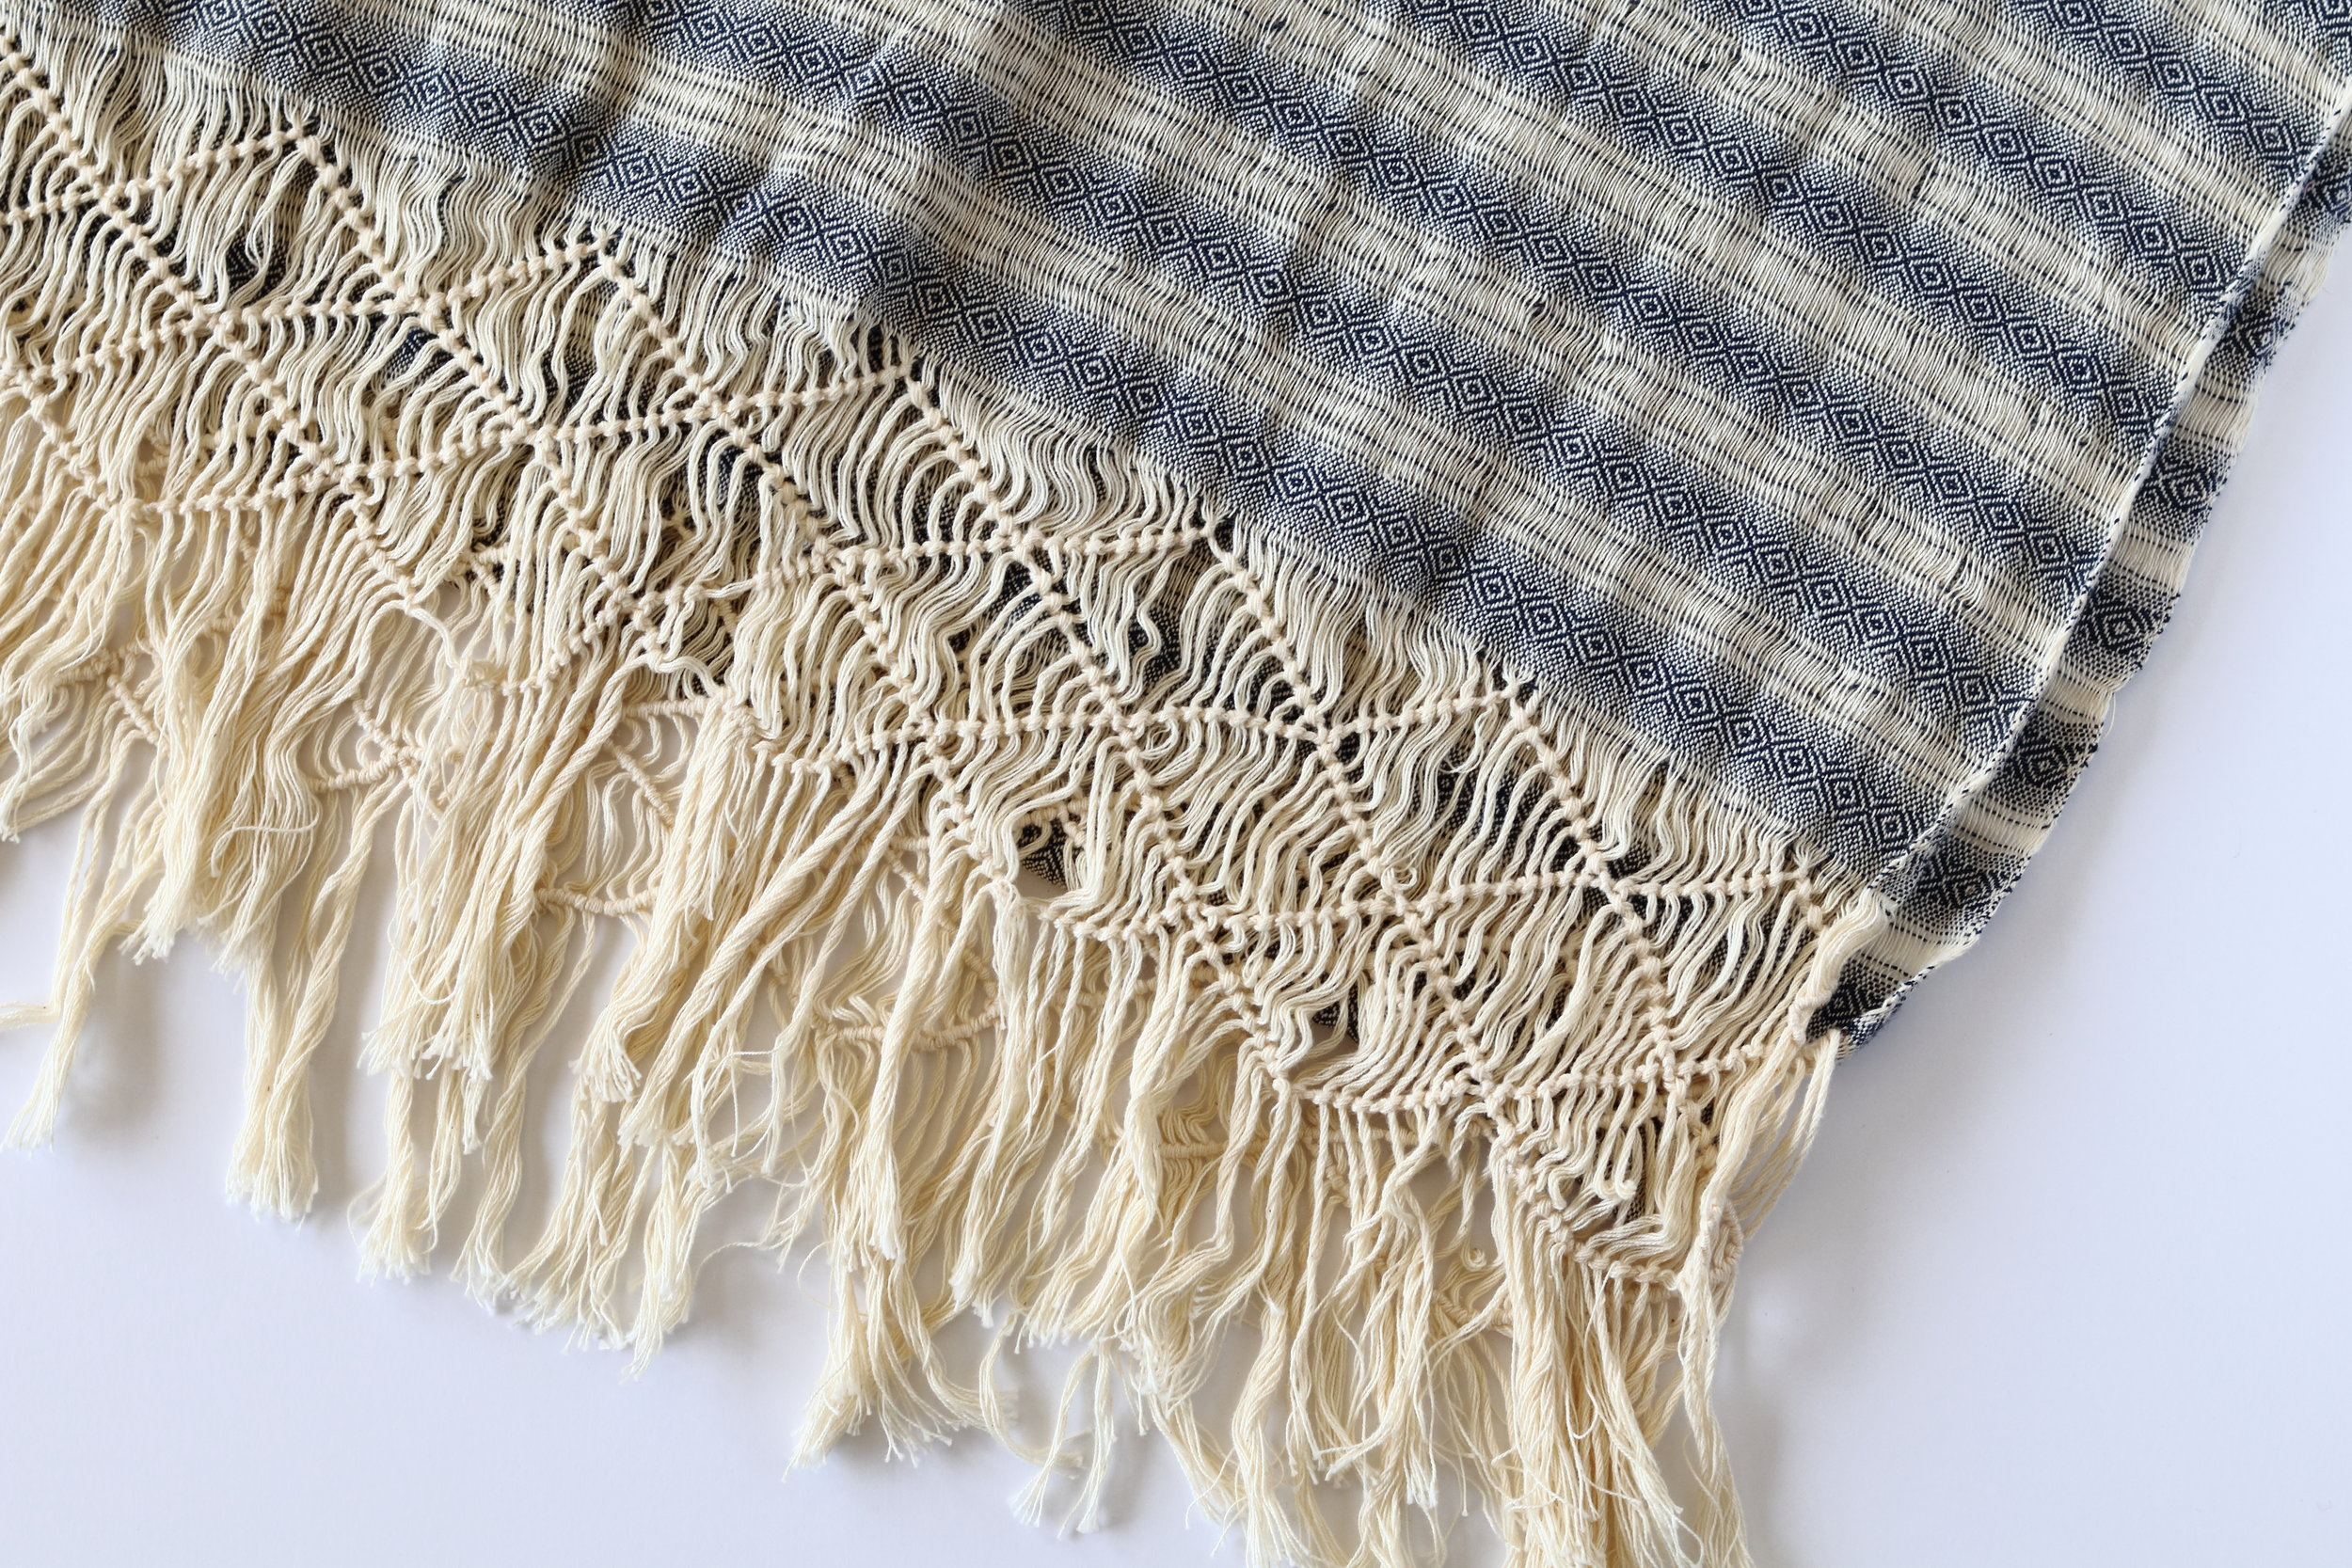 Vintage Rebozo Cloth